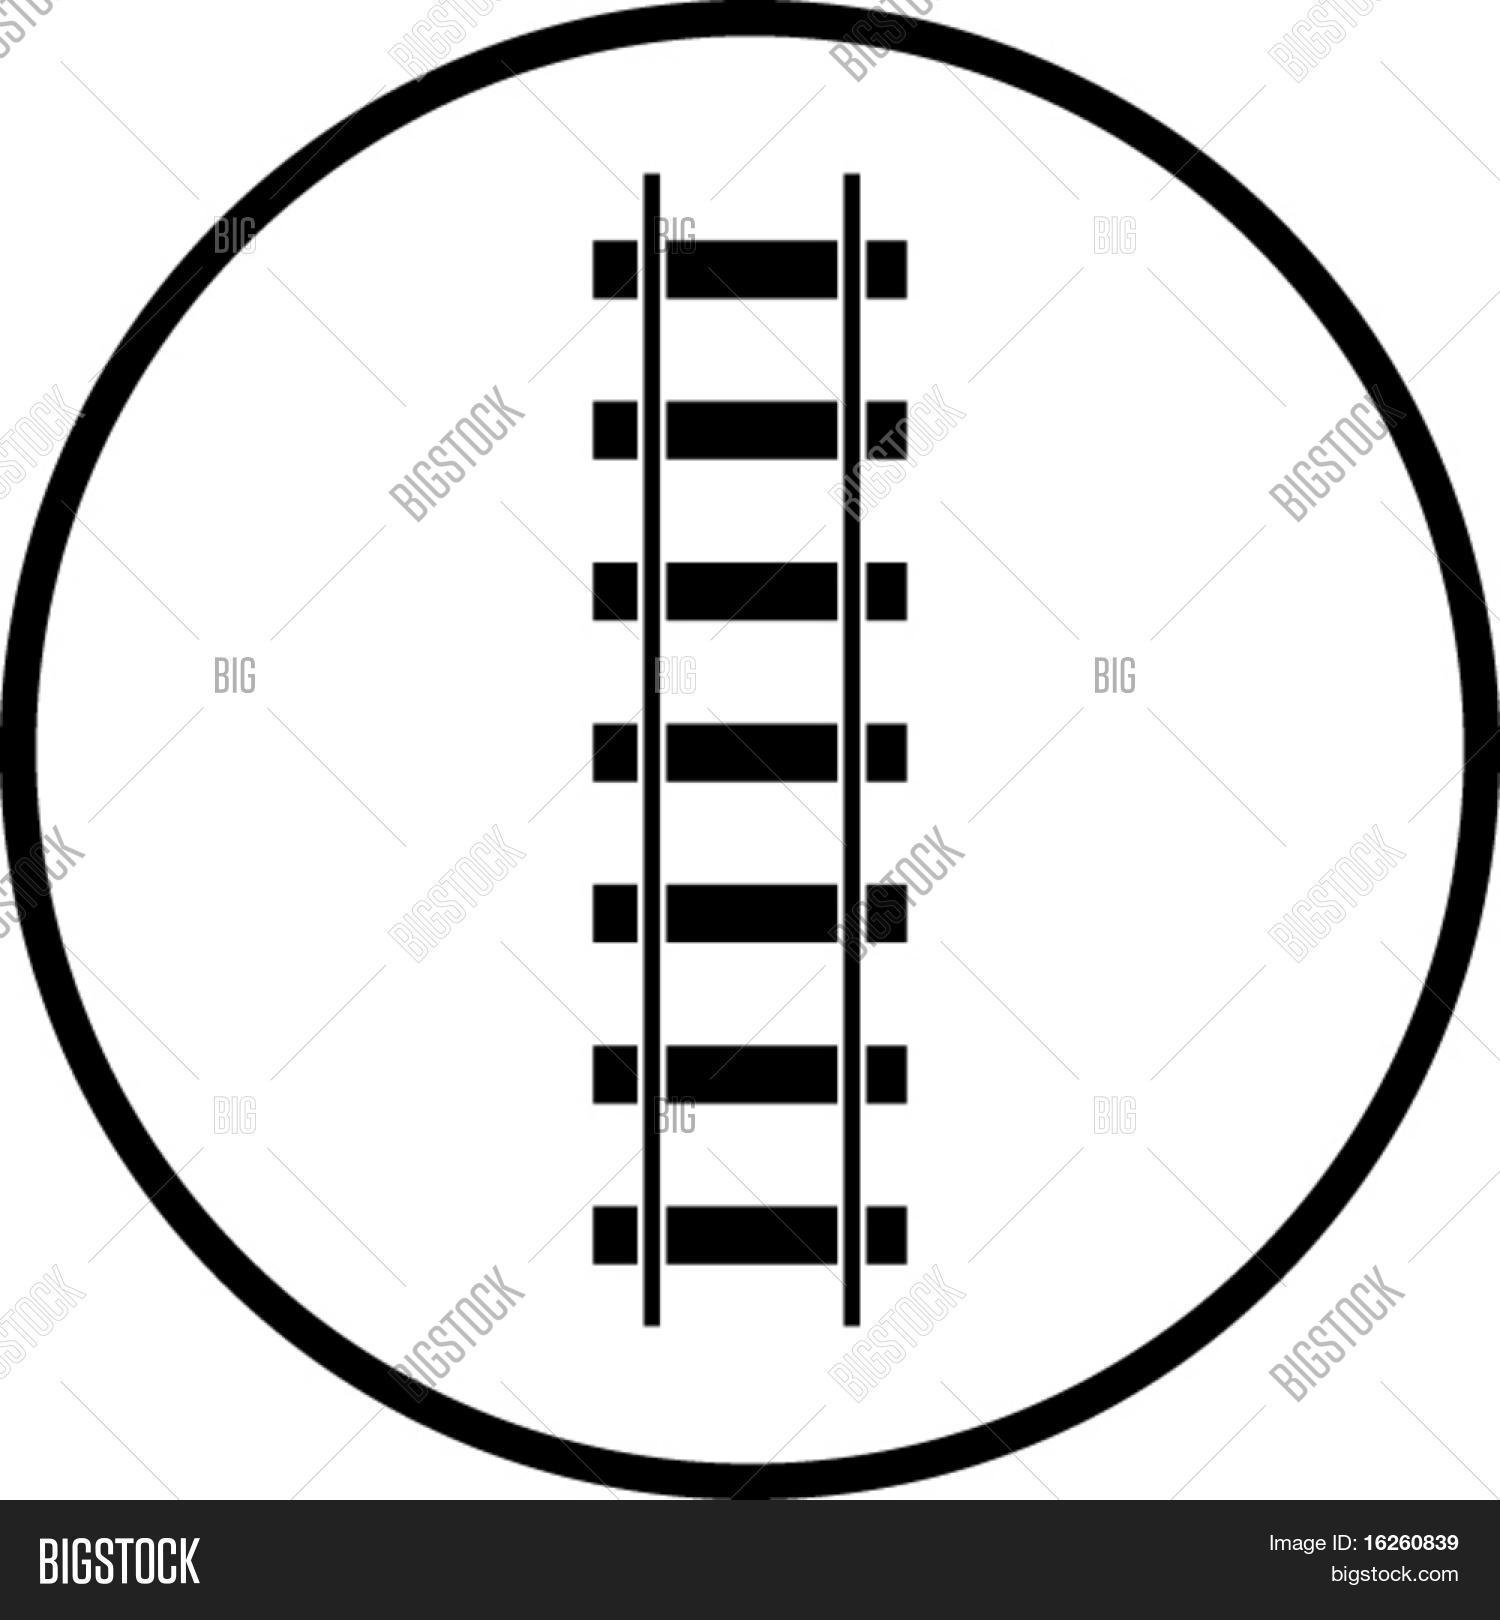 Railroad Symbol Vector & Photo (Free Trial) | Bigstock